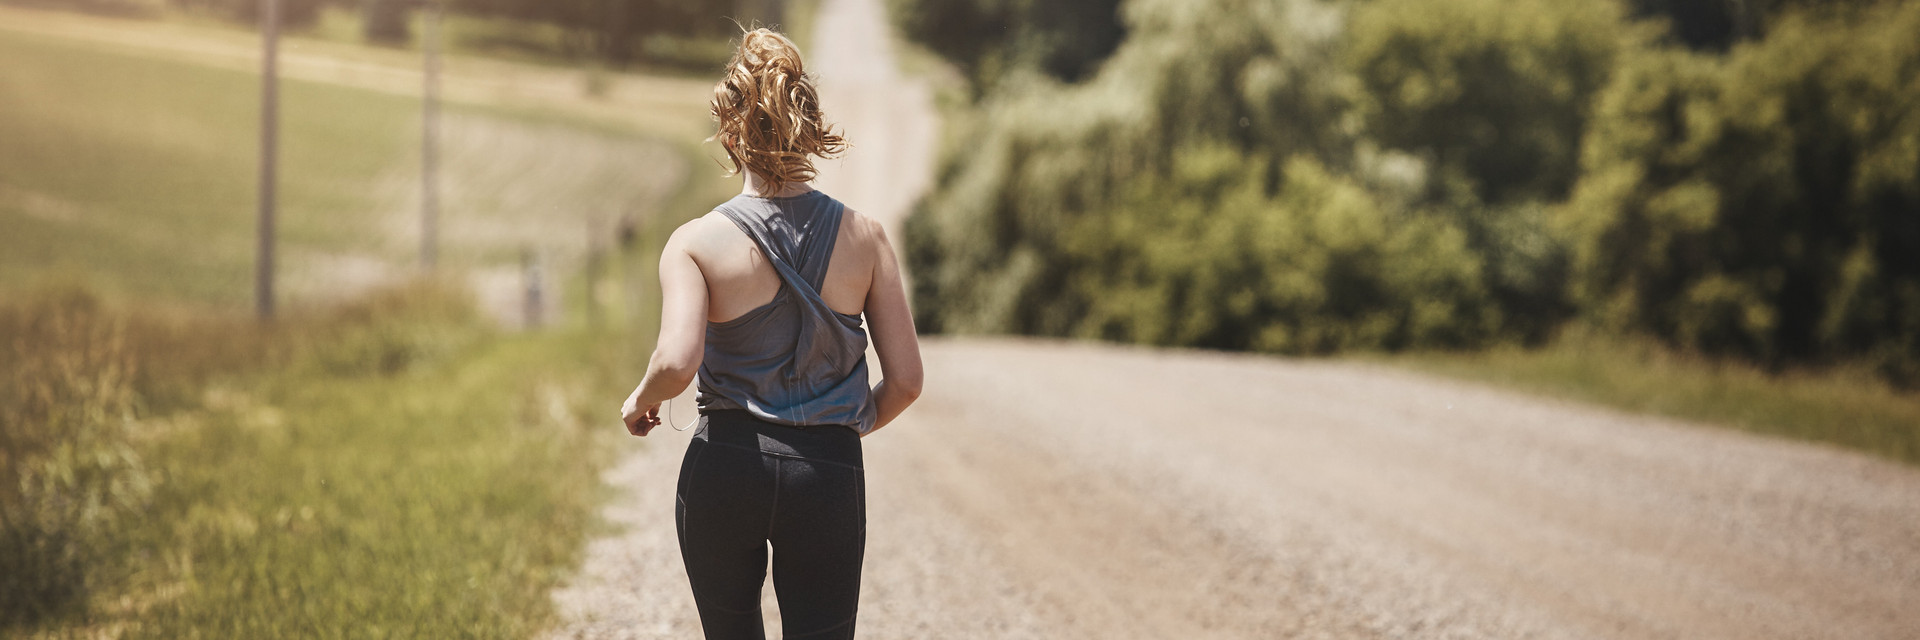 Running Rural: 3 Safety Tips for Country Routes